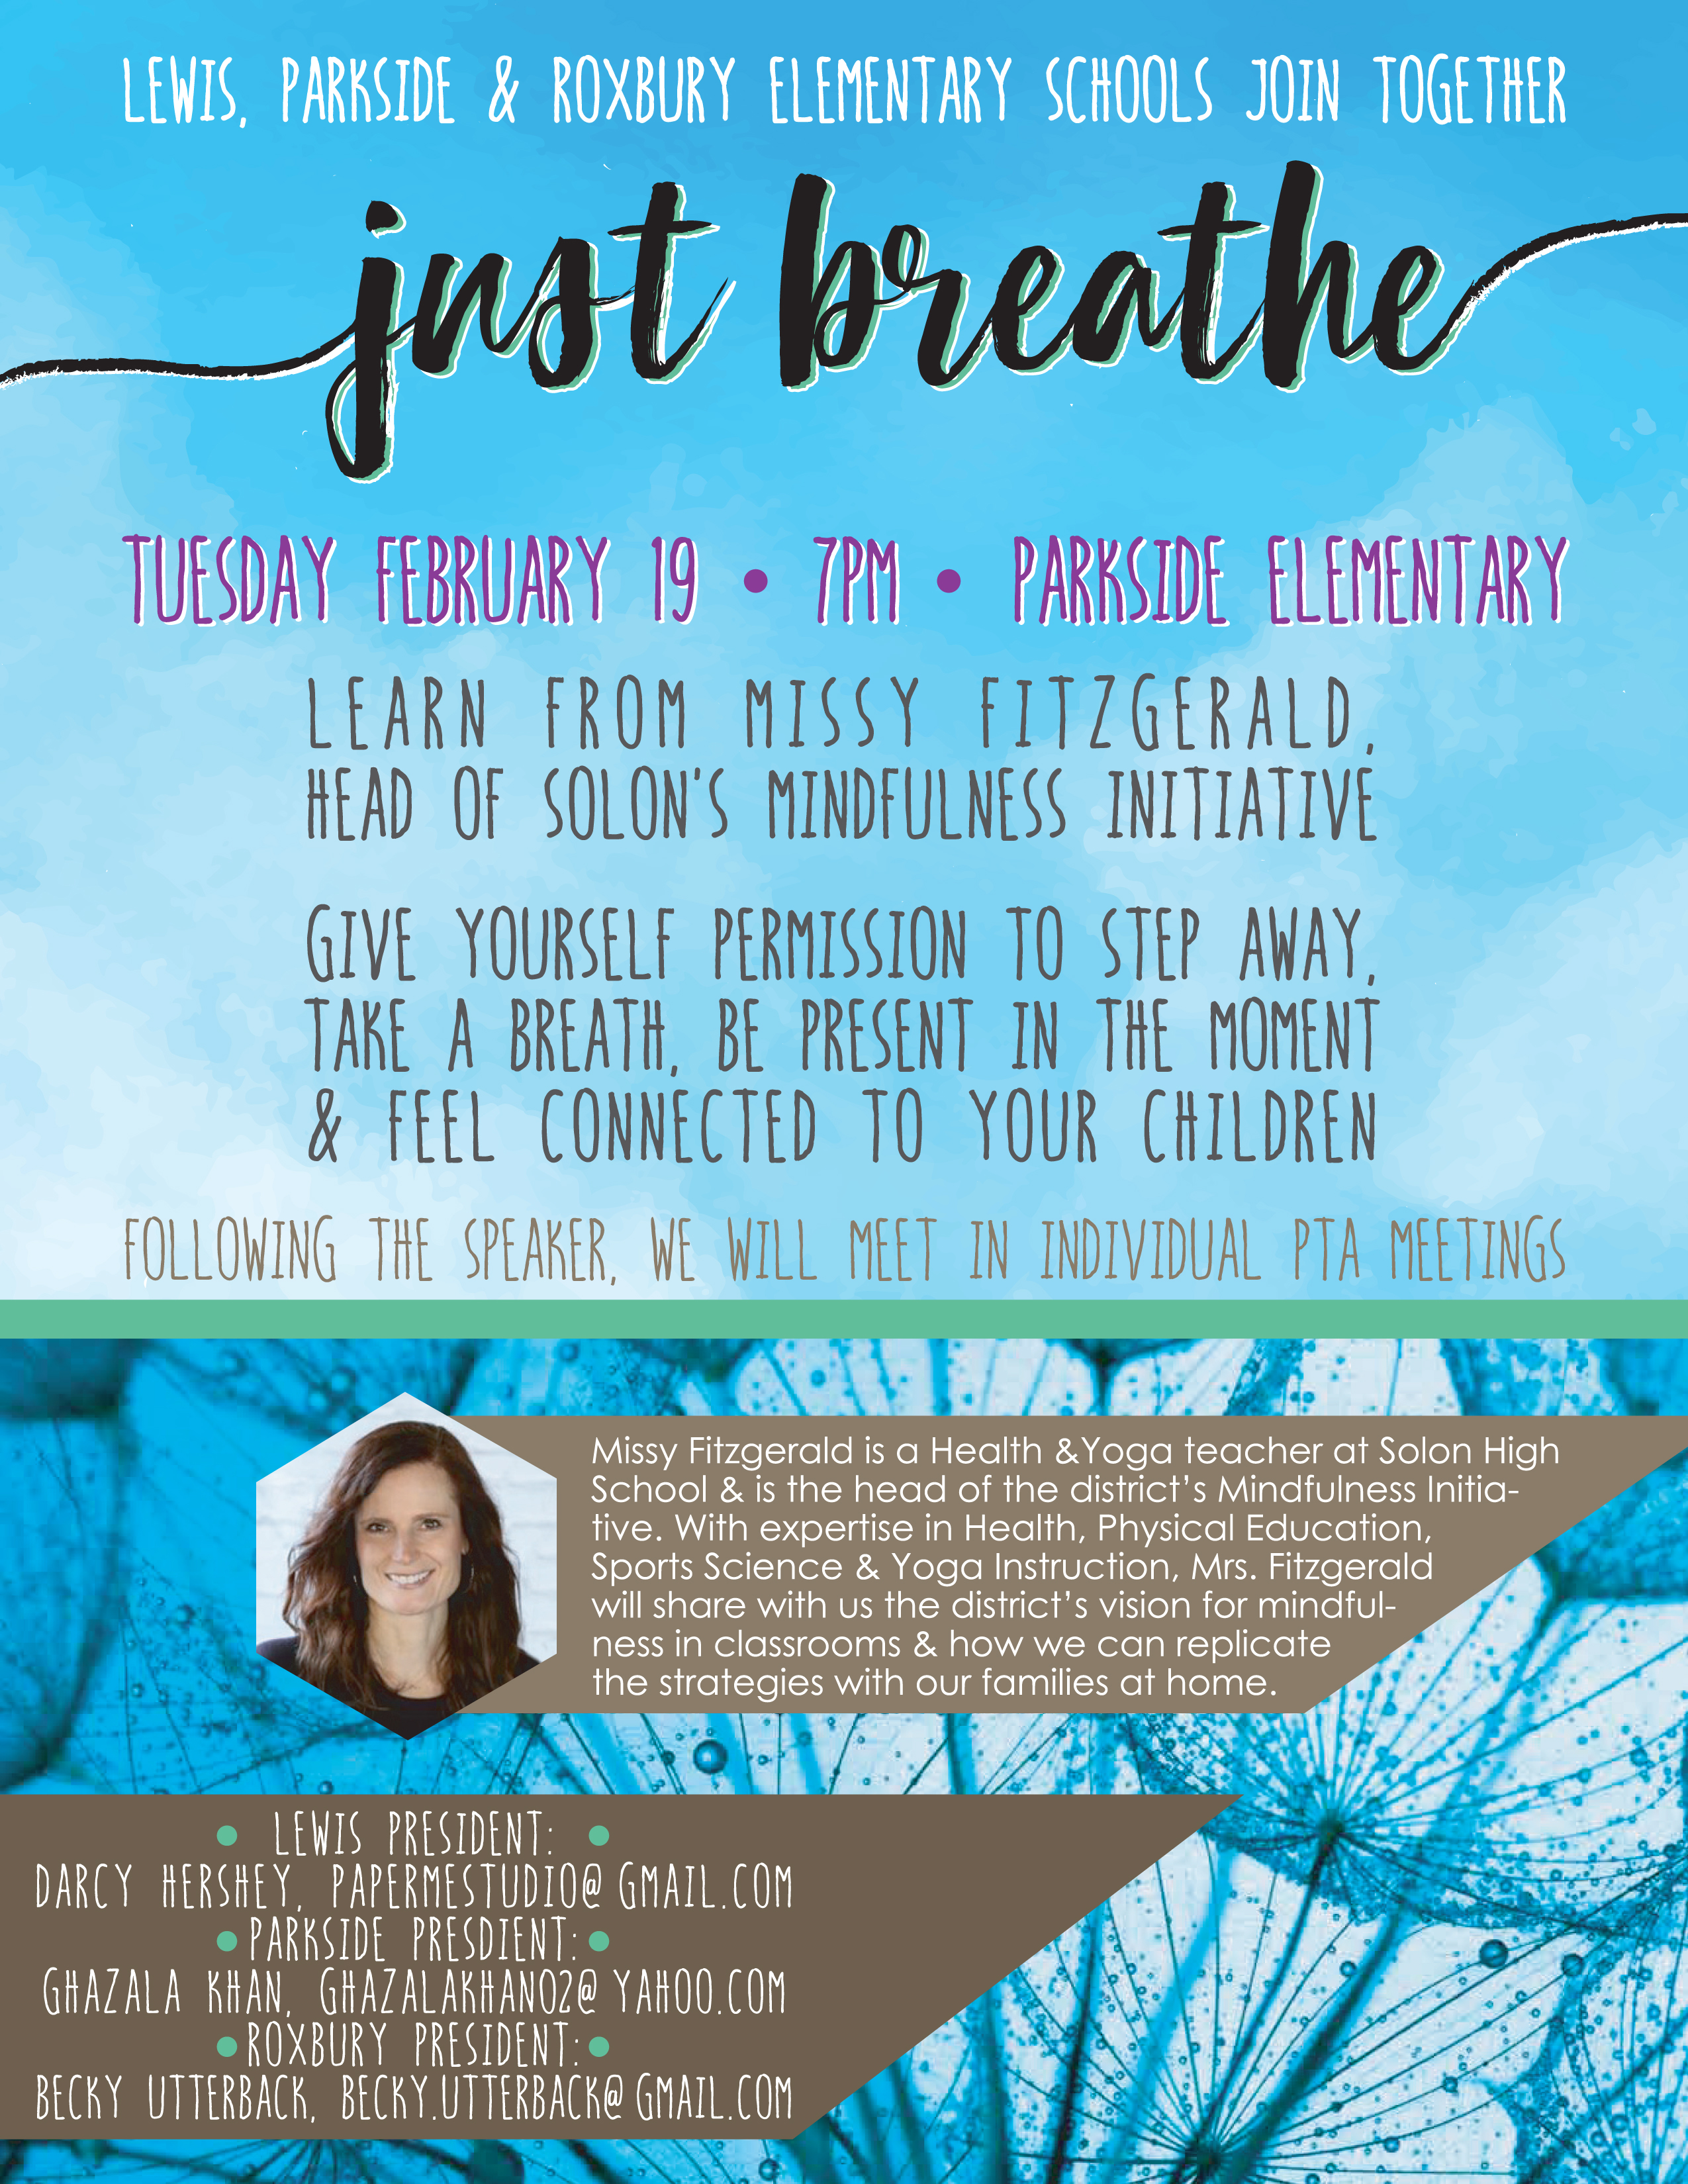 Flier for the upcoming Mindfulness Presentation on February 19 at 7 pm at Parkside Elementary School